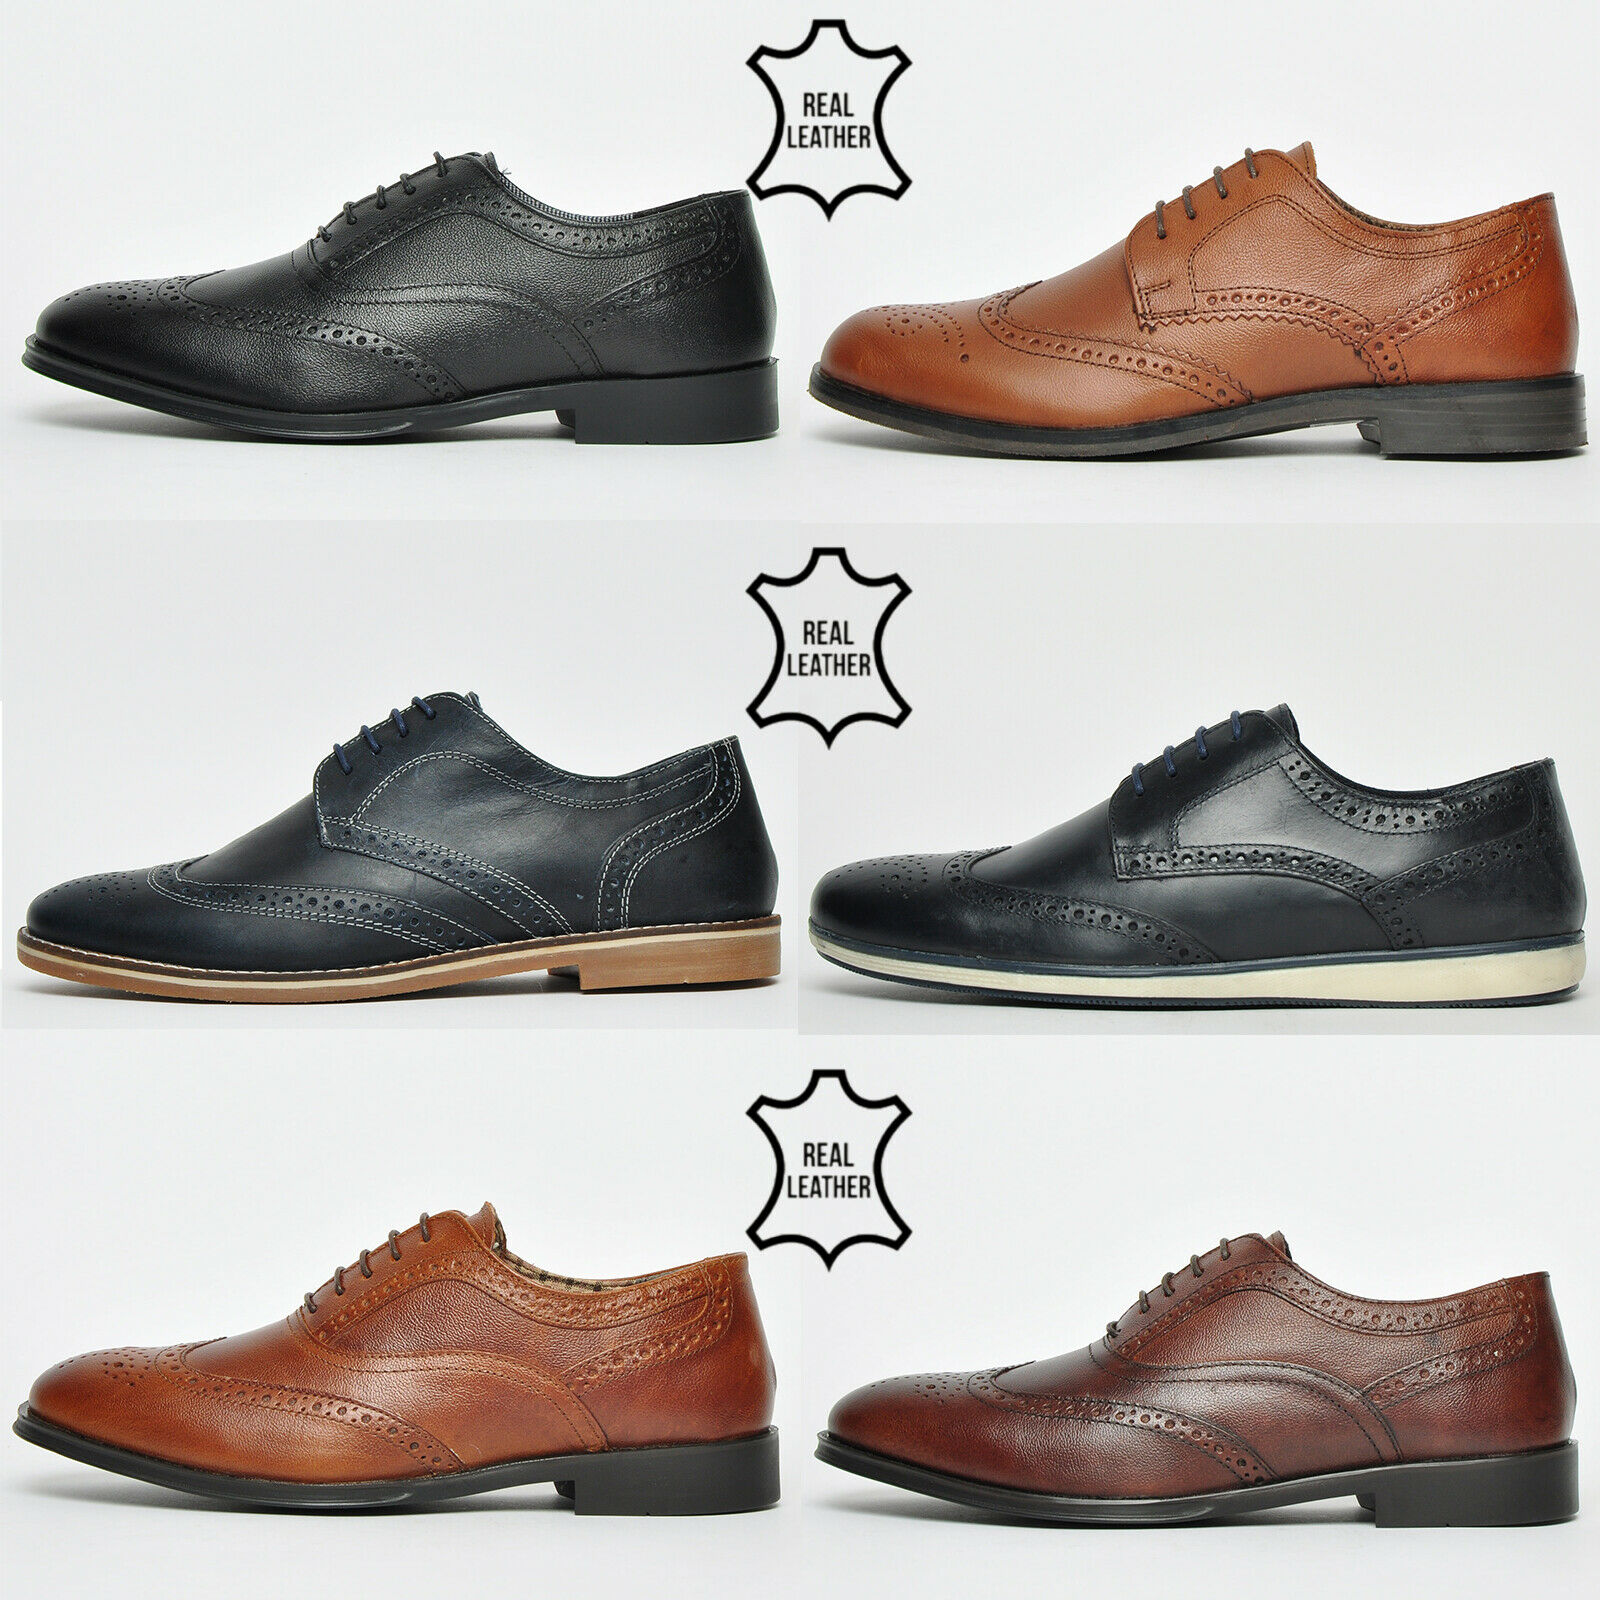 Red Tape REAL LEATHER Men's Brogue Shoes From £9.99 RRP £54.99 @ eBay